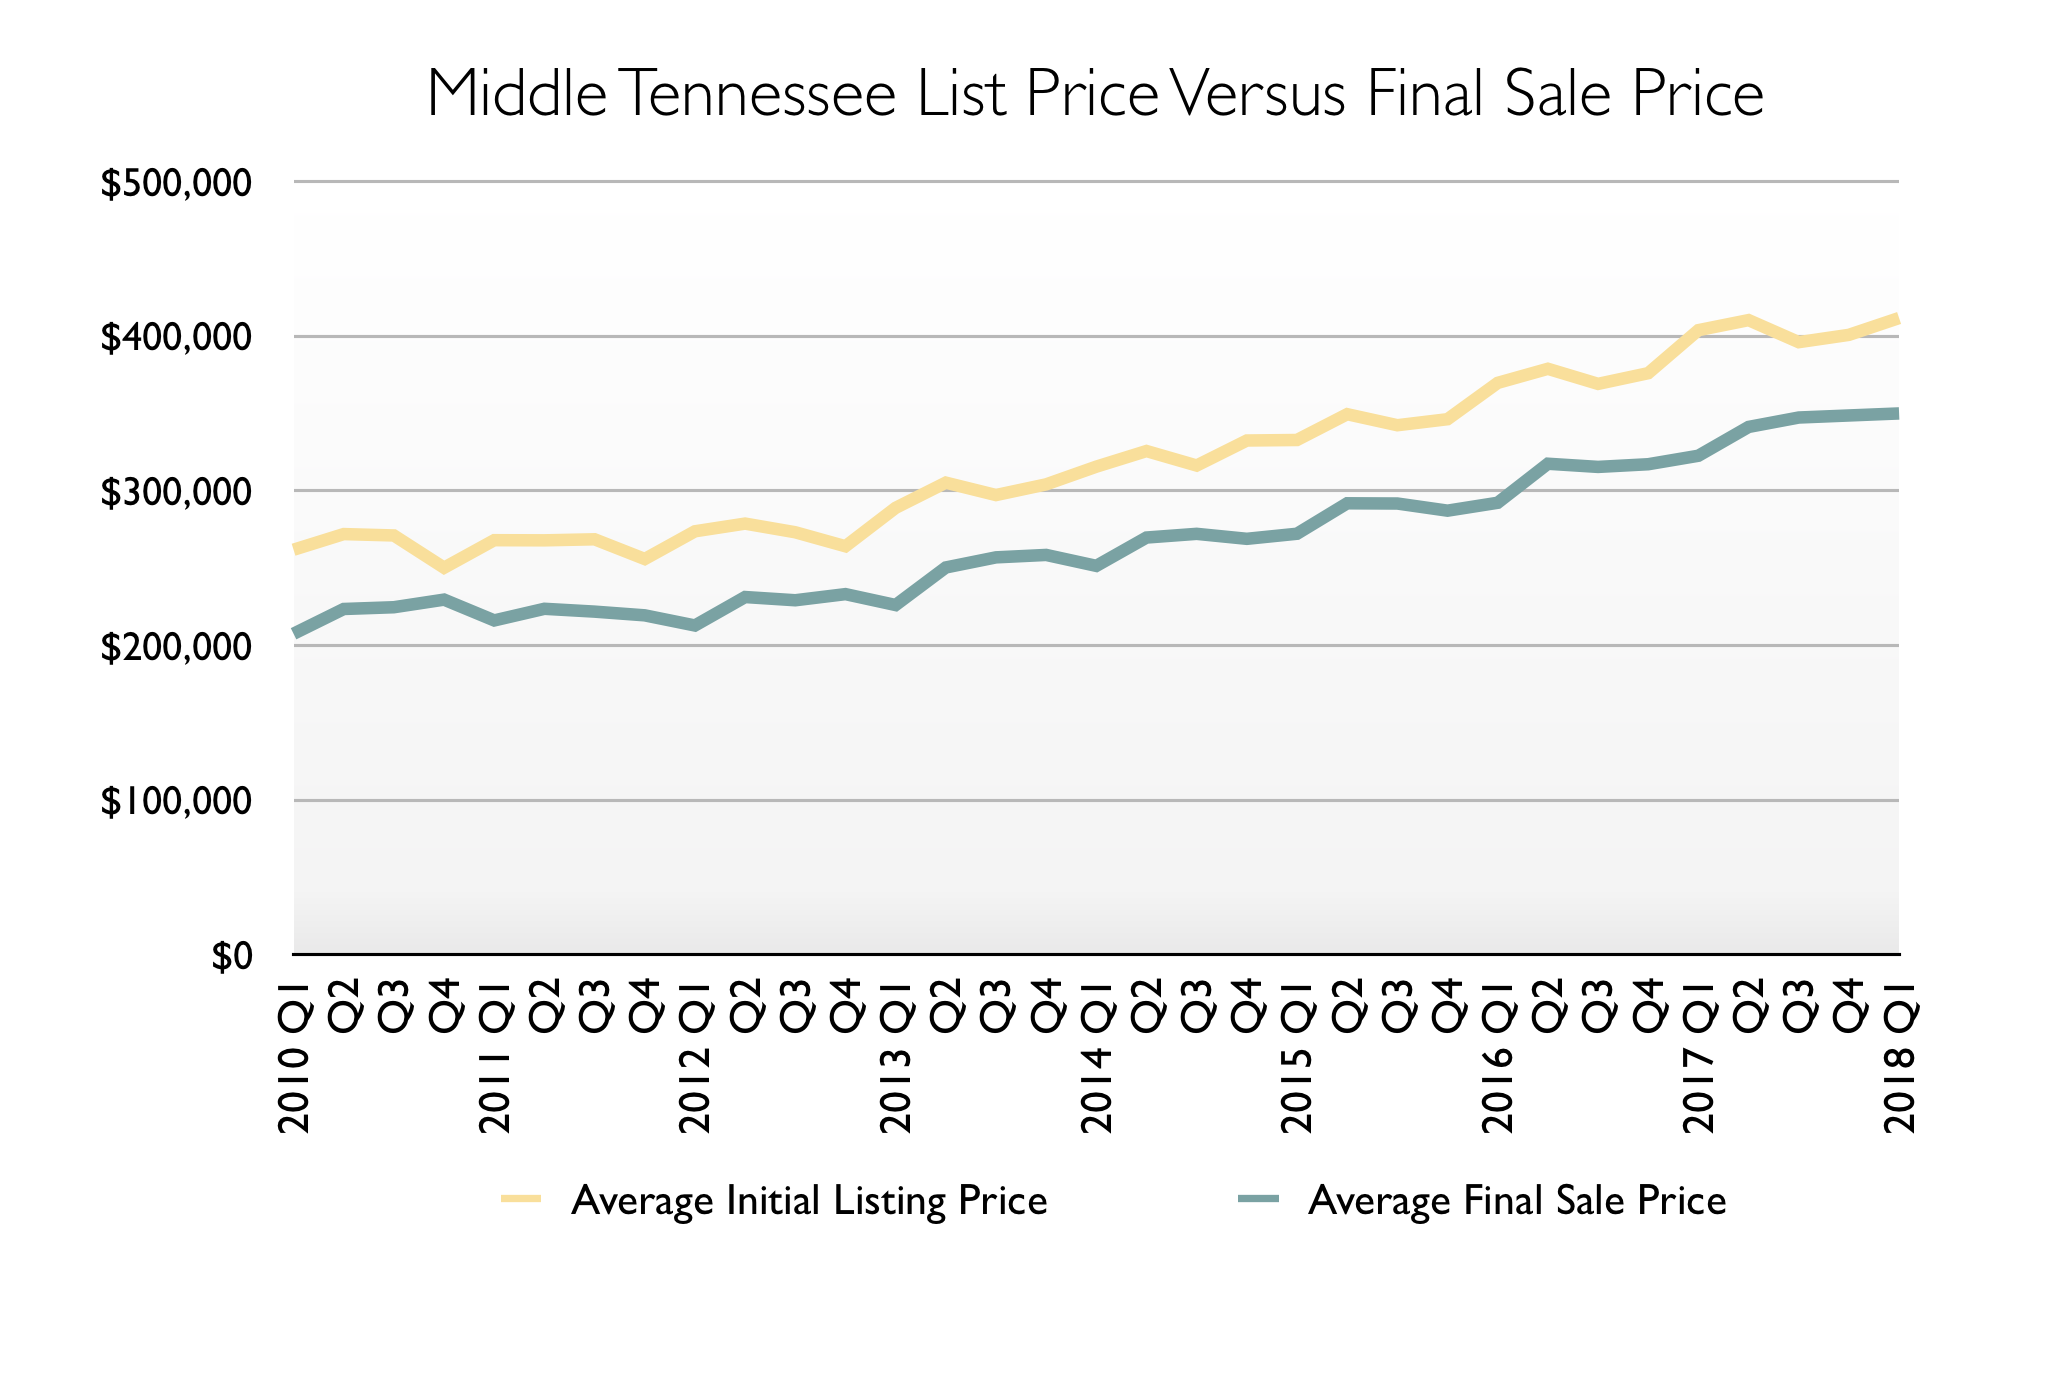 Graph: Middle Tennessee List Price Versus Final Sale Price